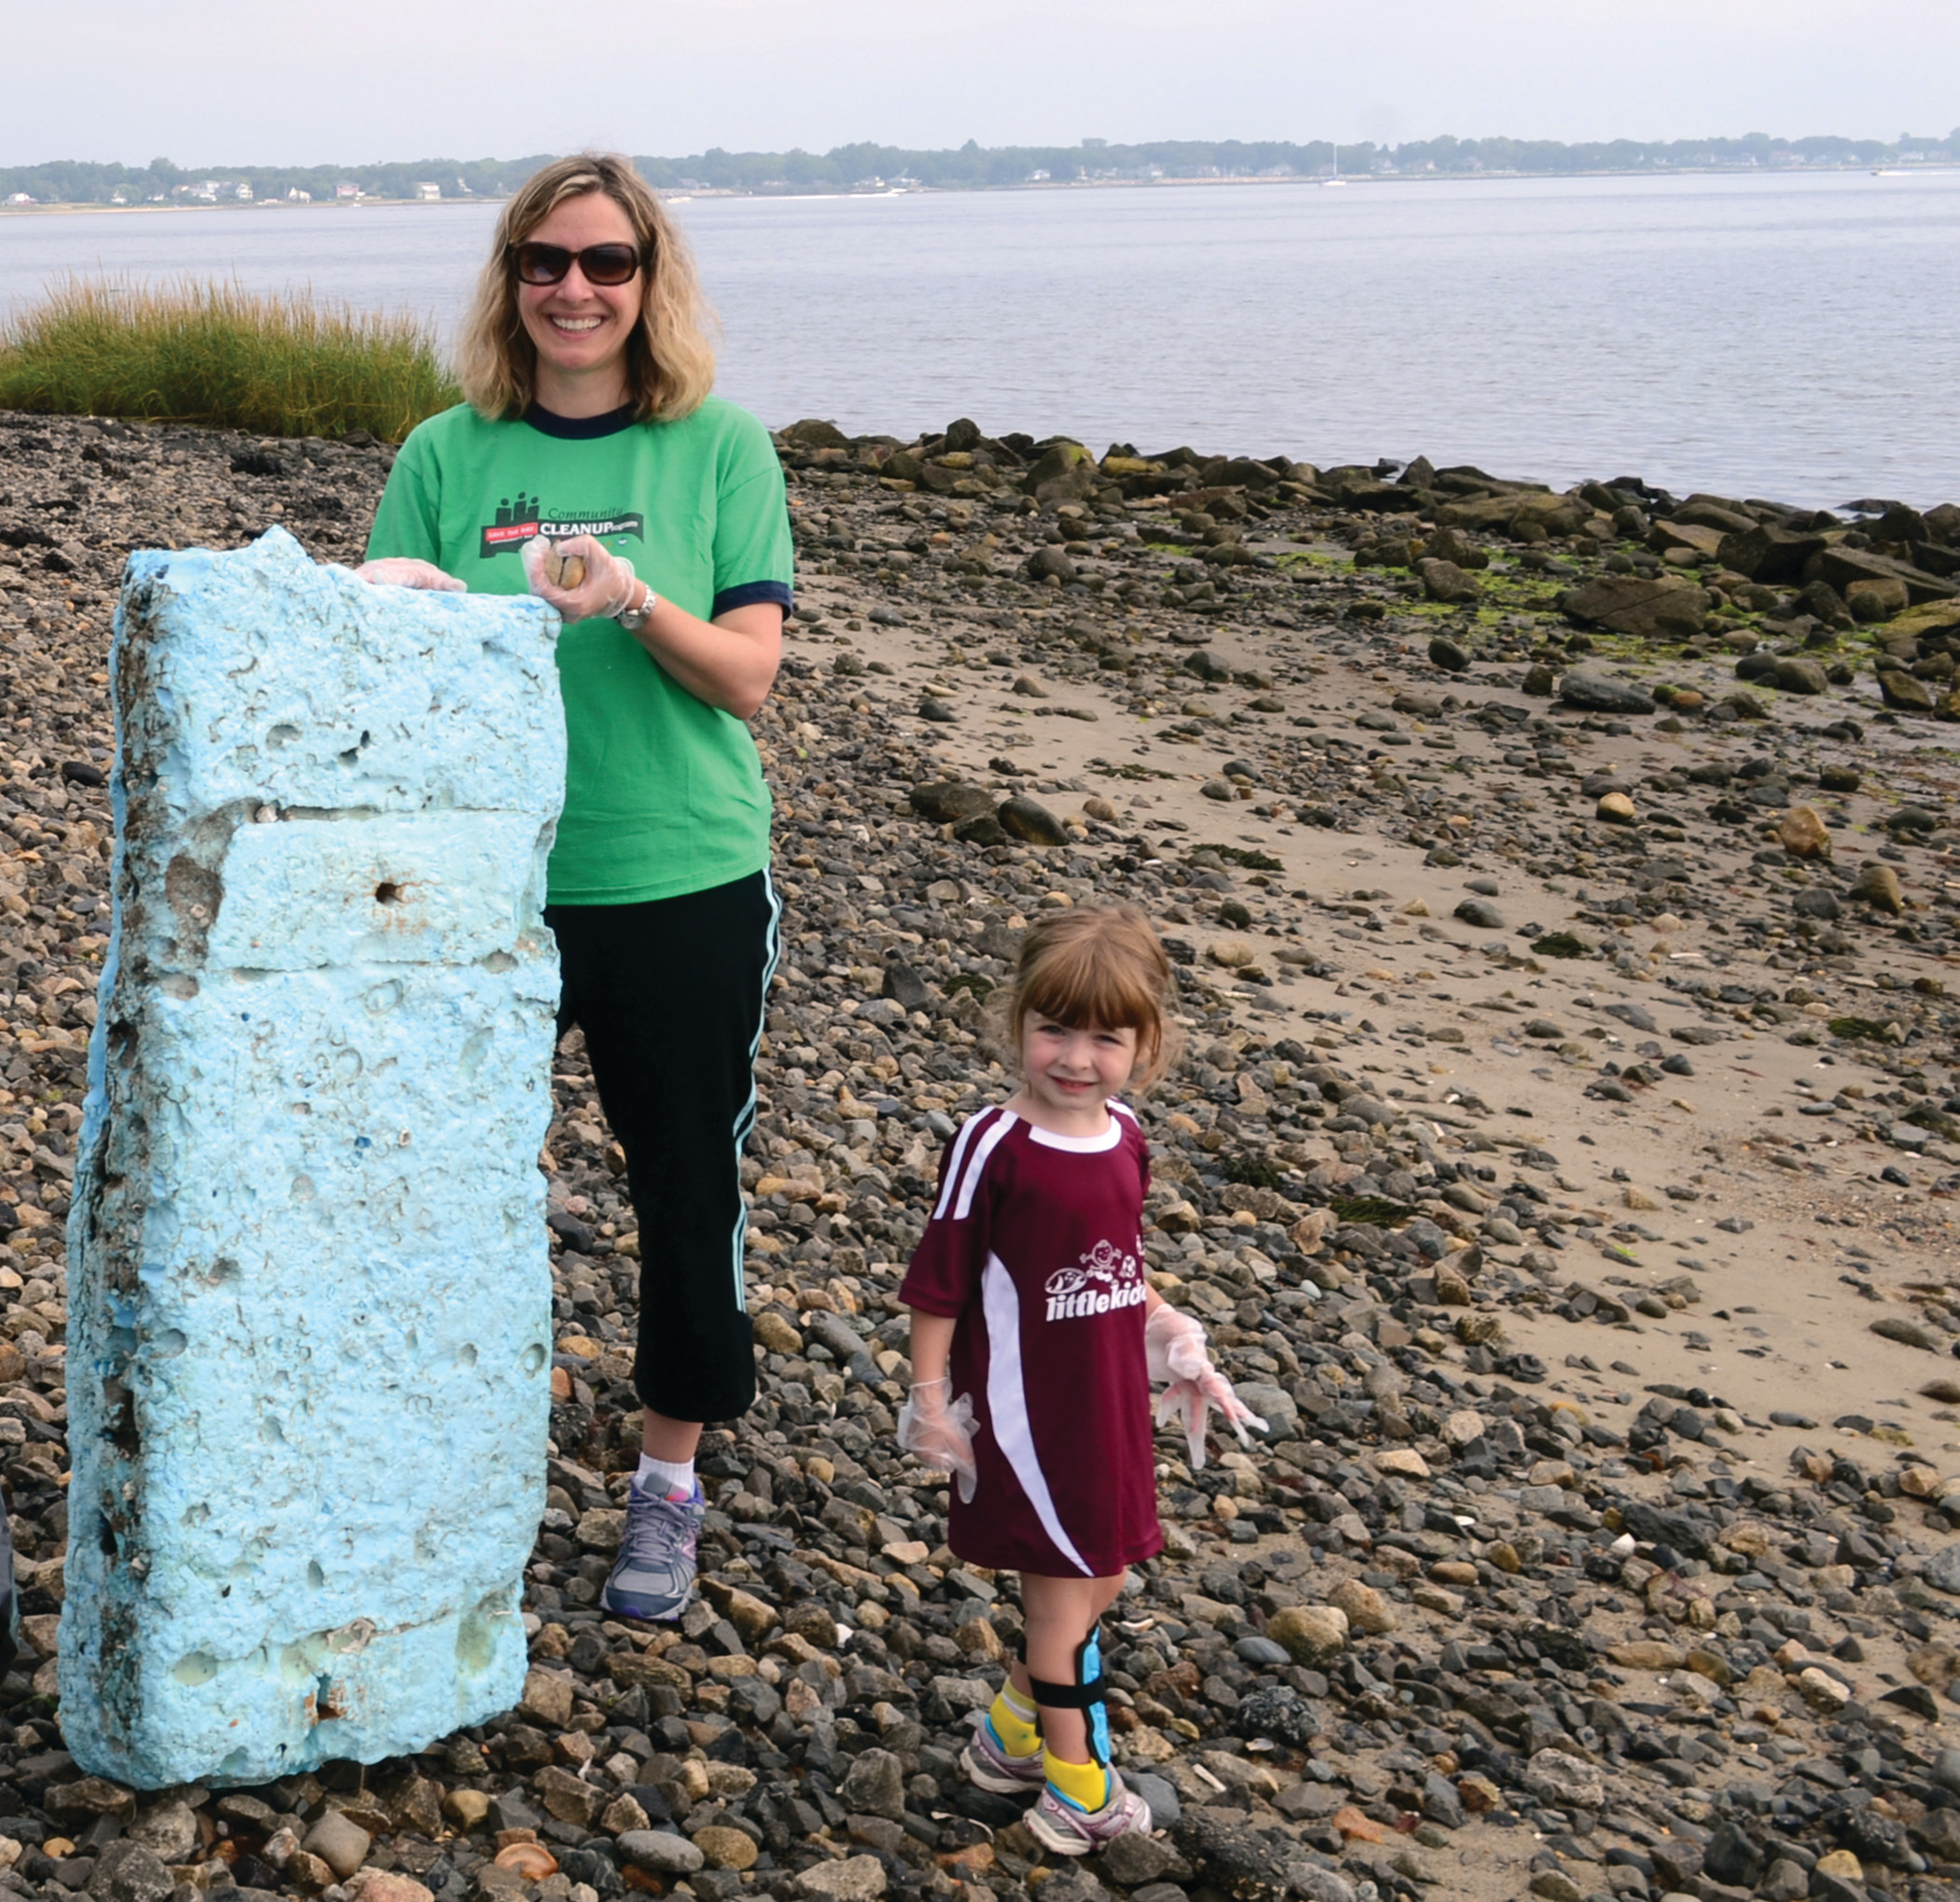 ALL HANDS ON DECK: Every individual, no matter how small, can help keep community shorelines clean, as evidenced by 3-year-old Sophie Murphy, pictured here with her mother, Xenia, on the shores of Chepiwanoxet Point.